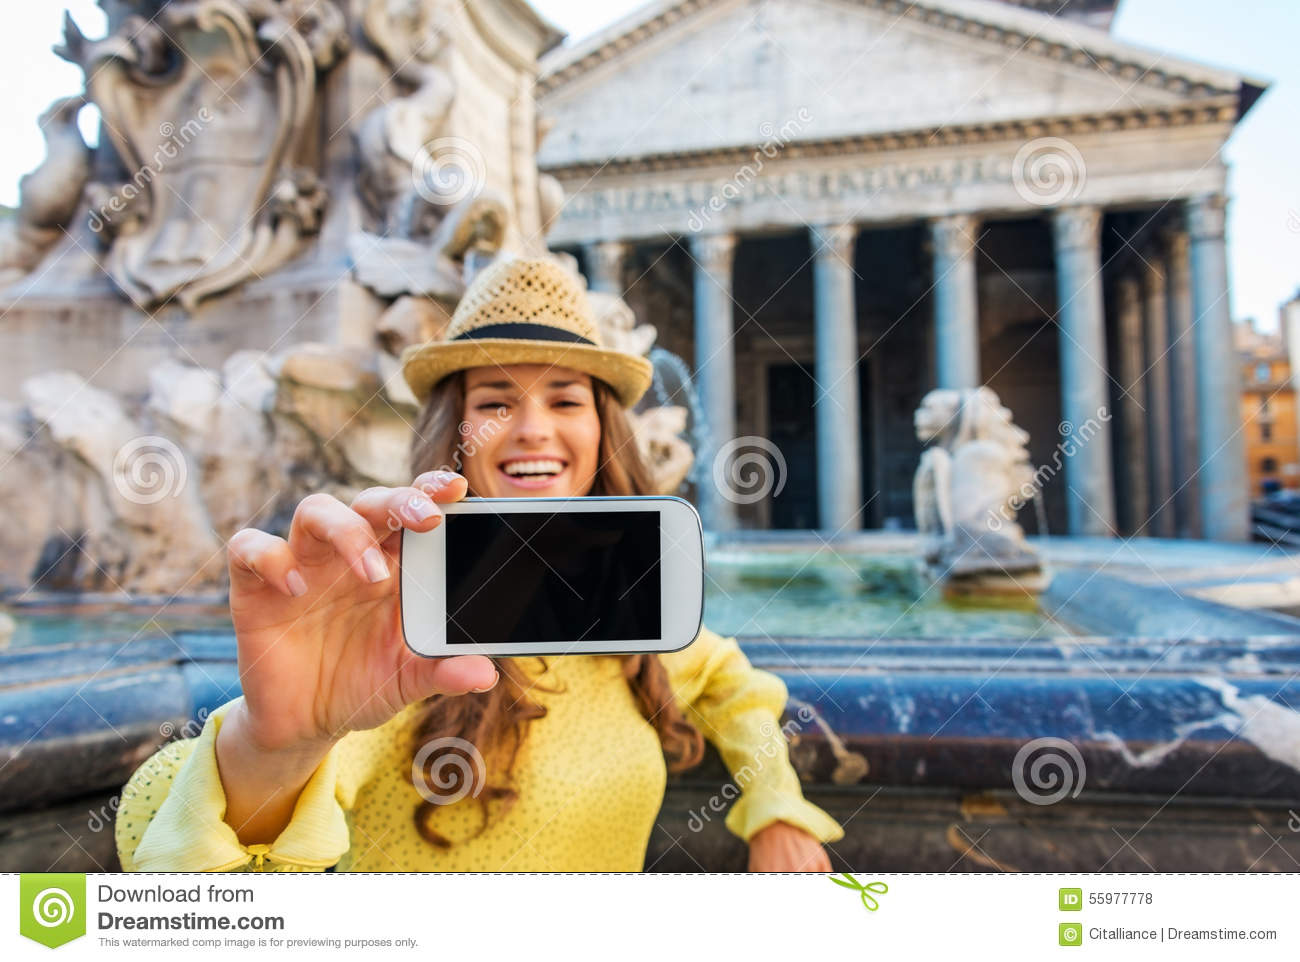 Can039t take her mobile away during fuck